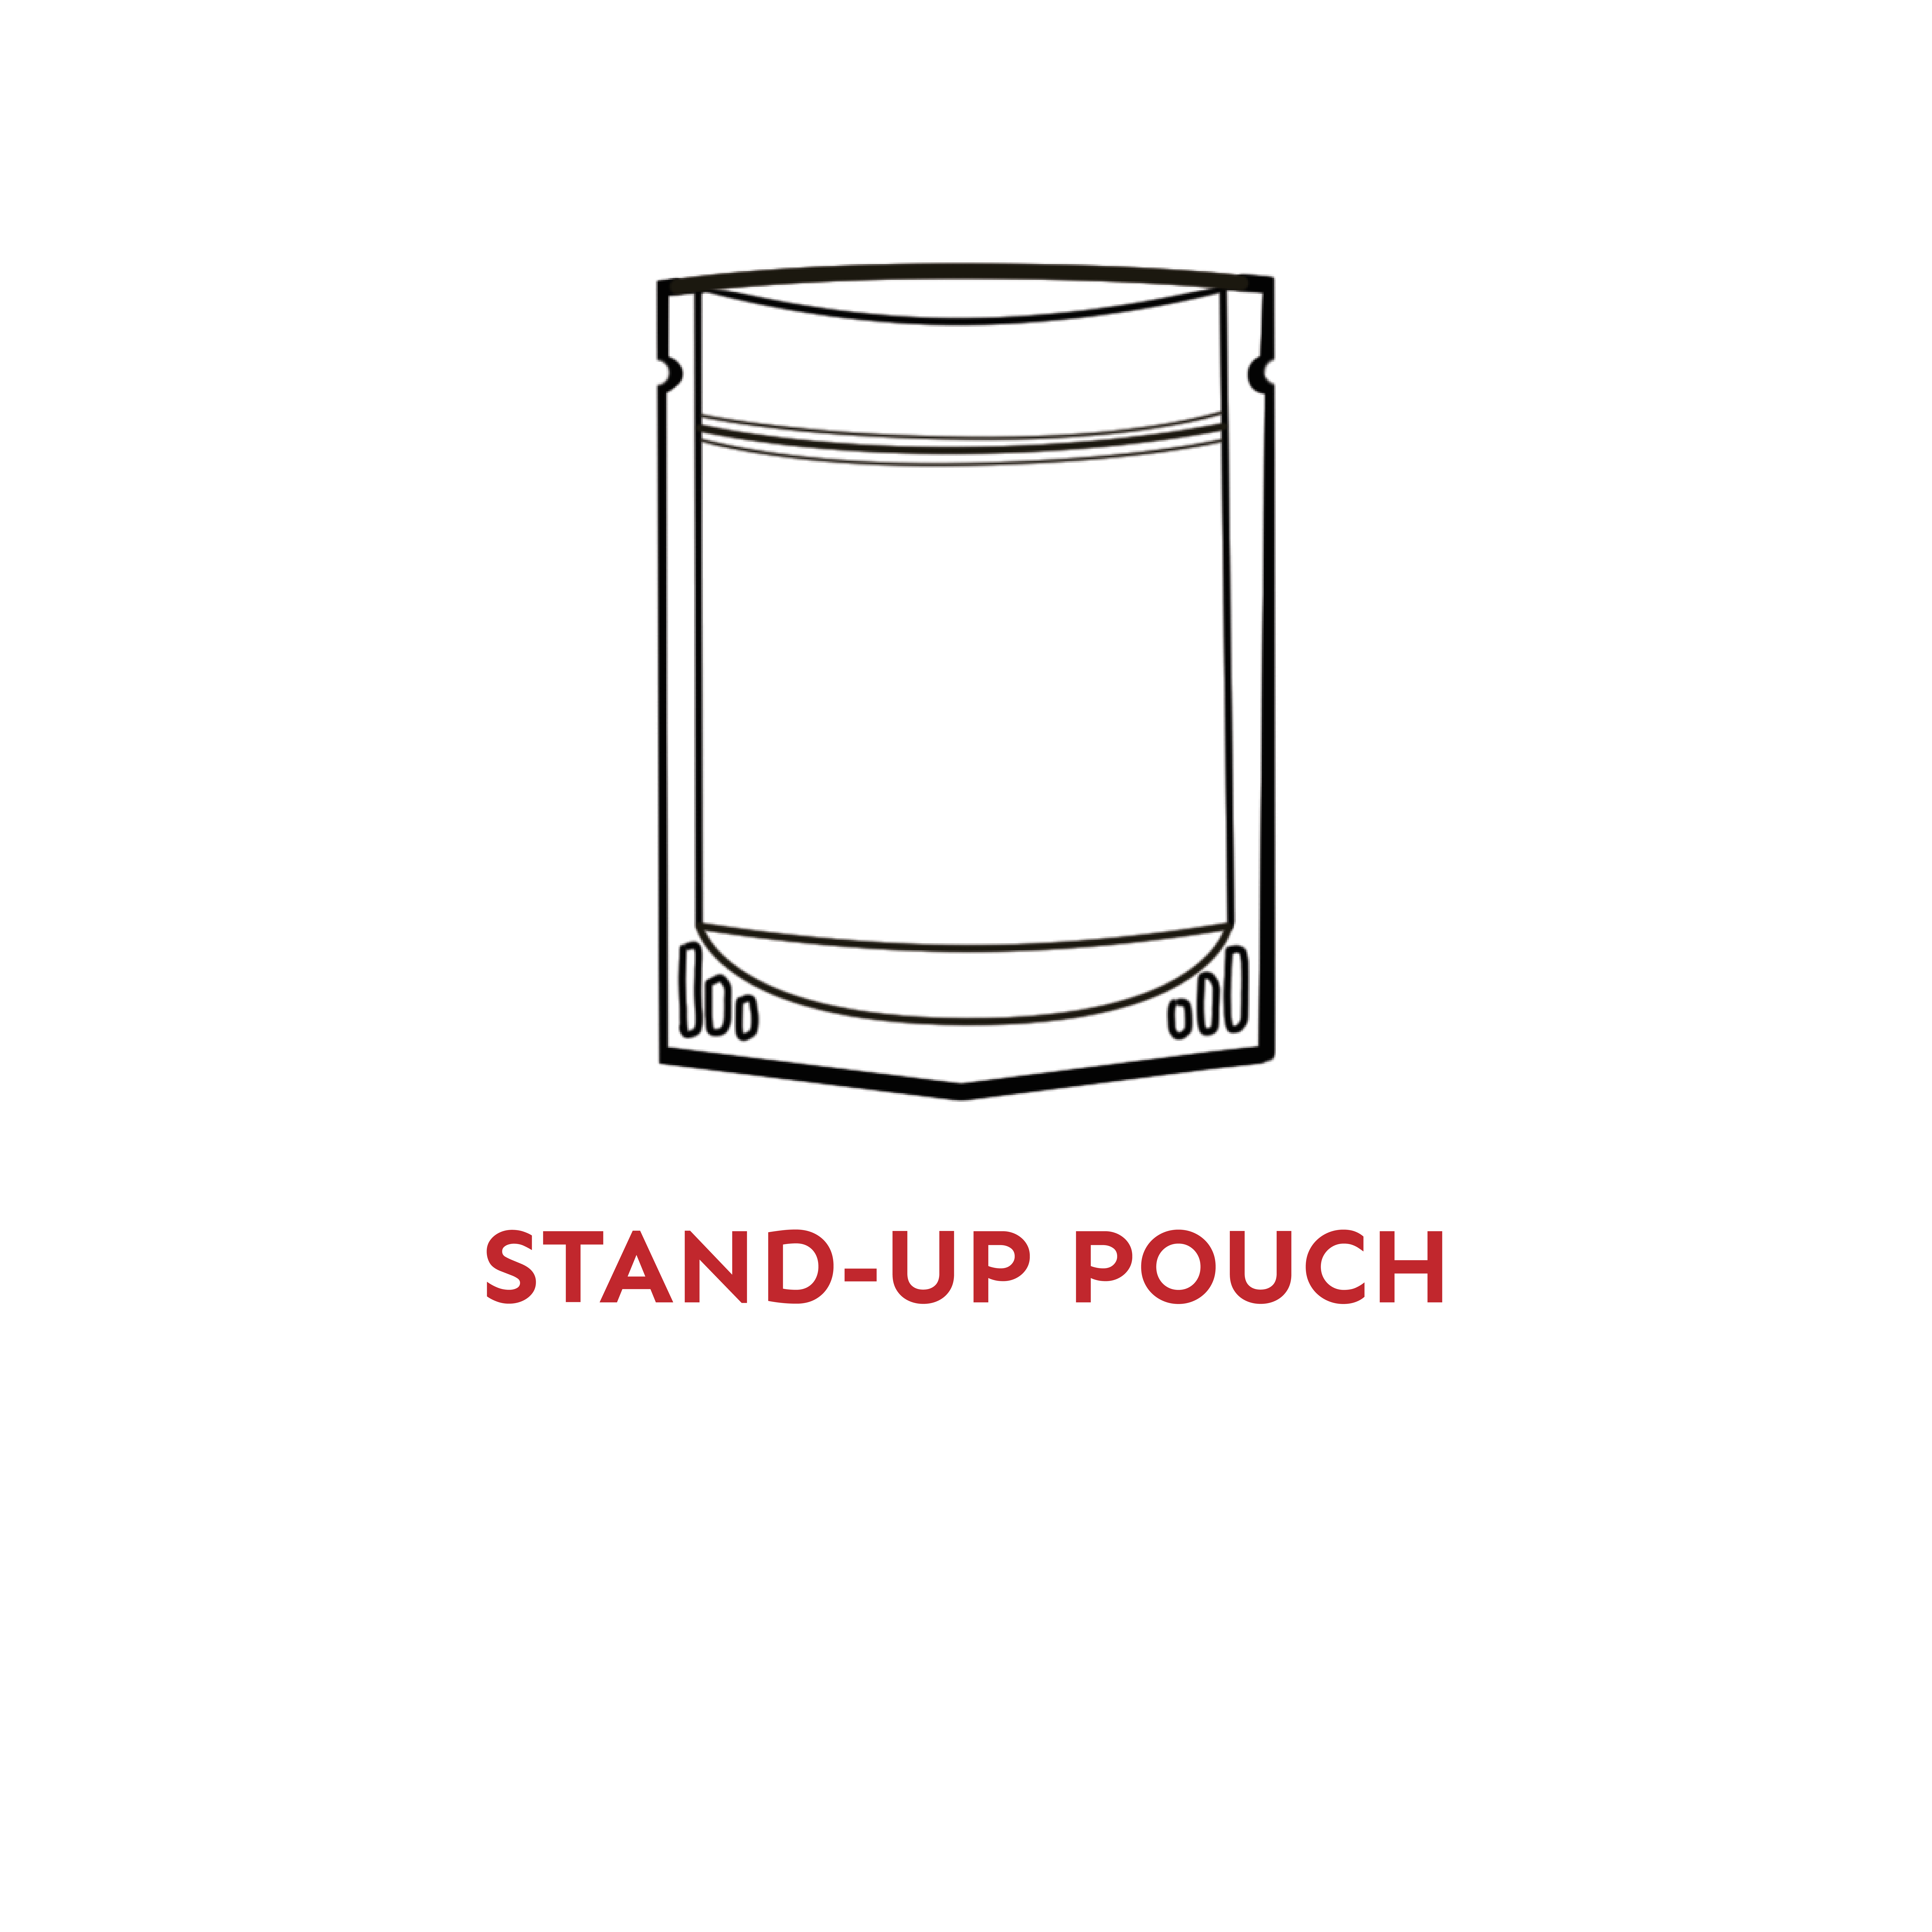 Stand-Up Pouch Packaging